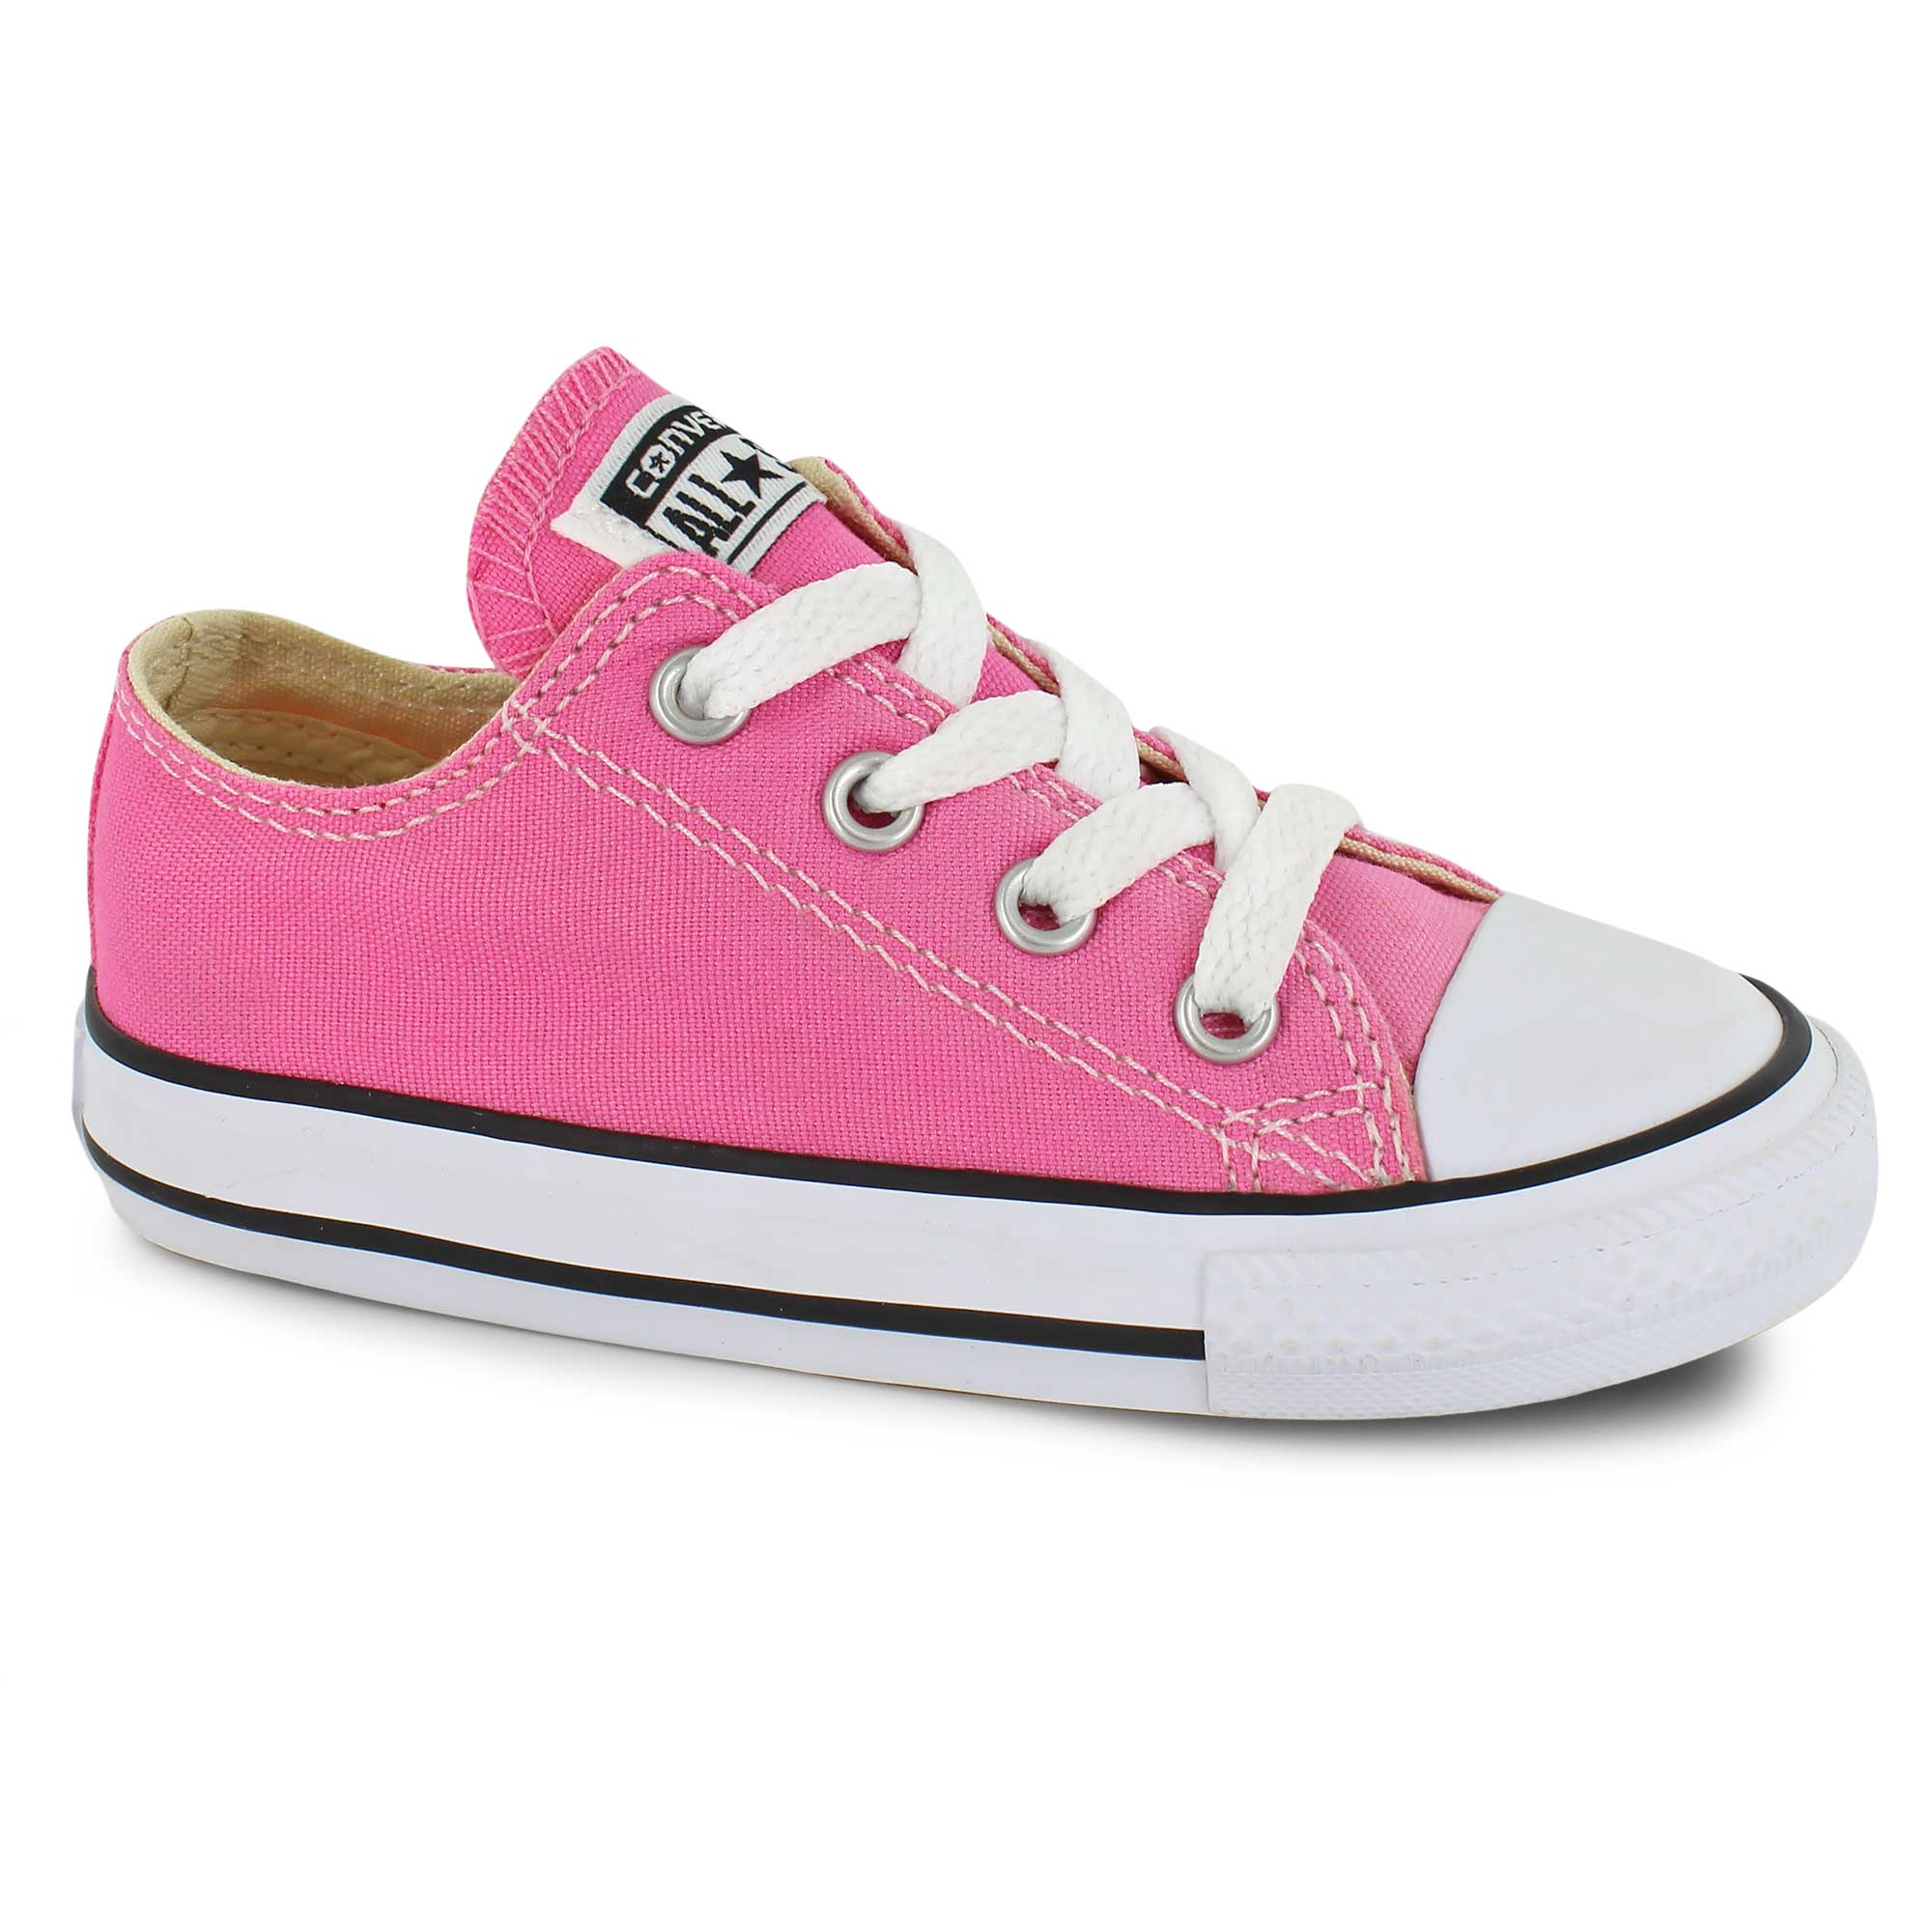 43af053740f6e4 Converse® Chuck Taylor All Star Low